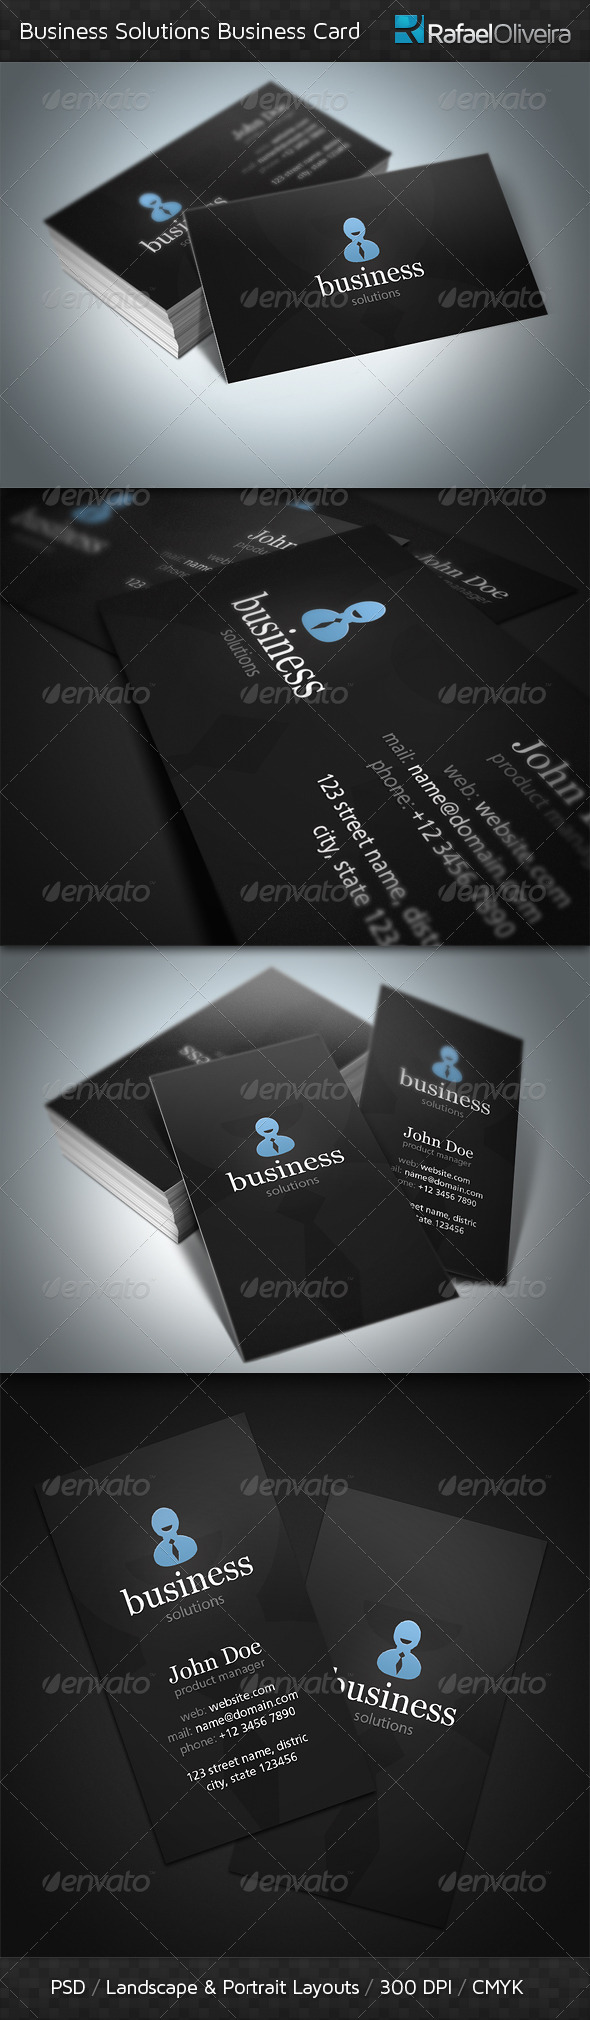 GraphicRiver Business Solutions Business Cards 3680814